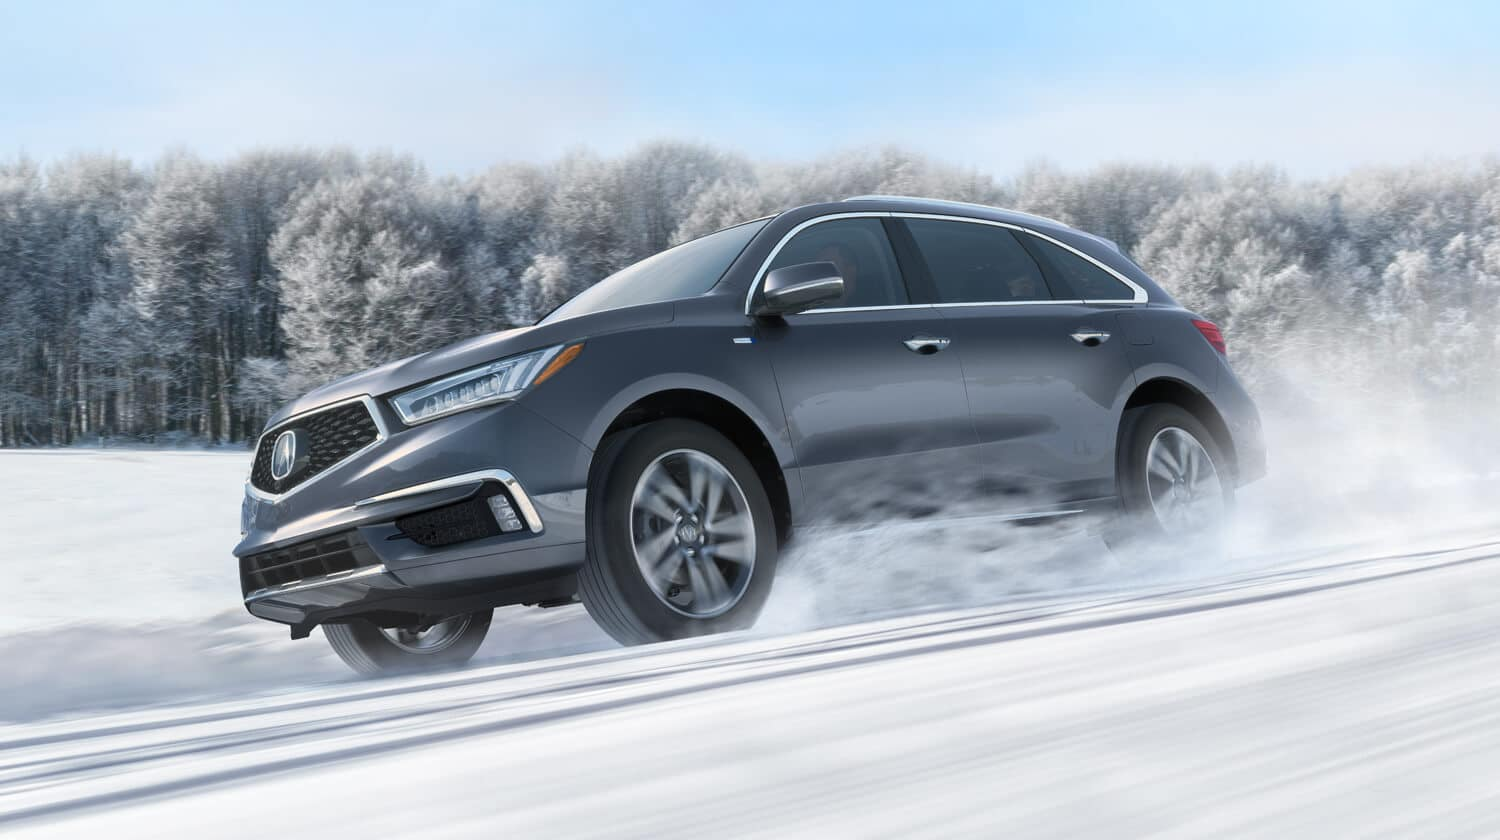 2020 Acura MDX AWD Exterior Side Angle Snow Location